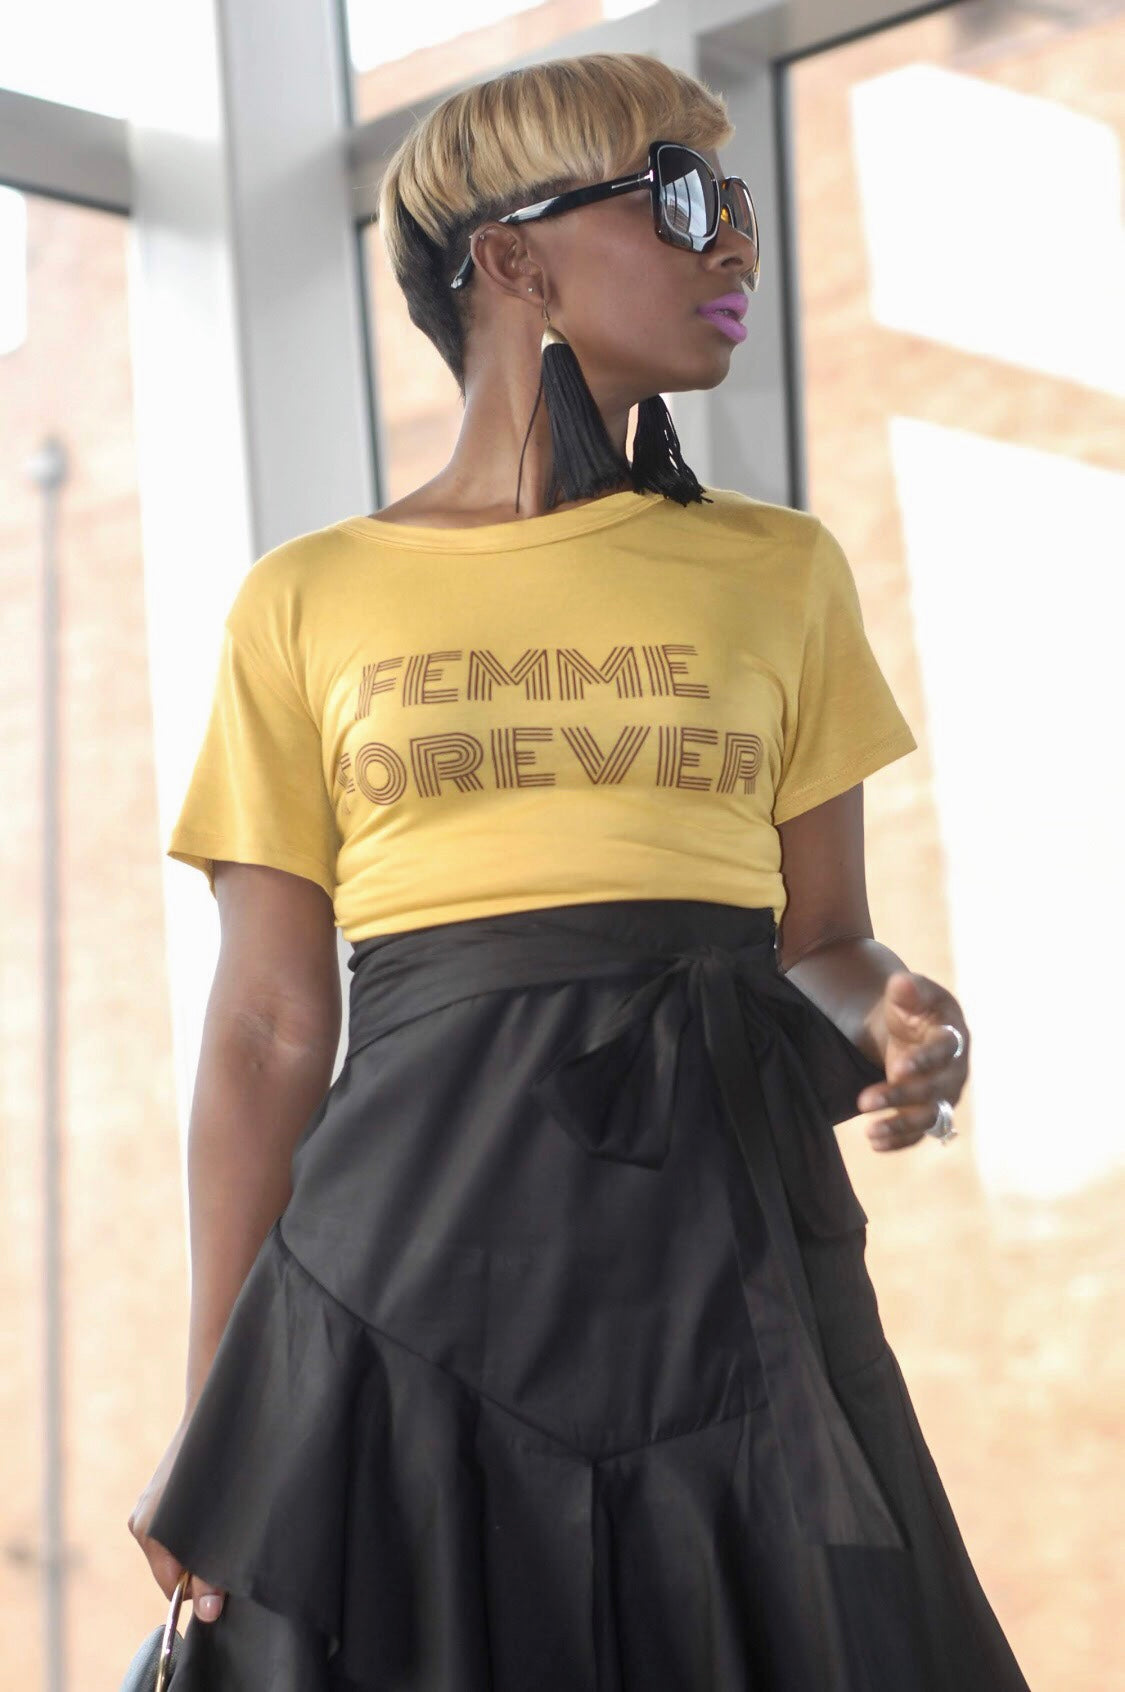 """Femininity"" Tee (Available in Curvy)"